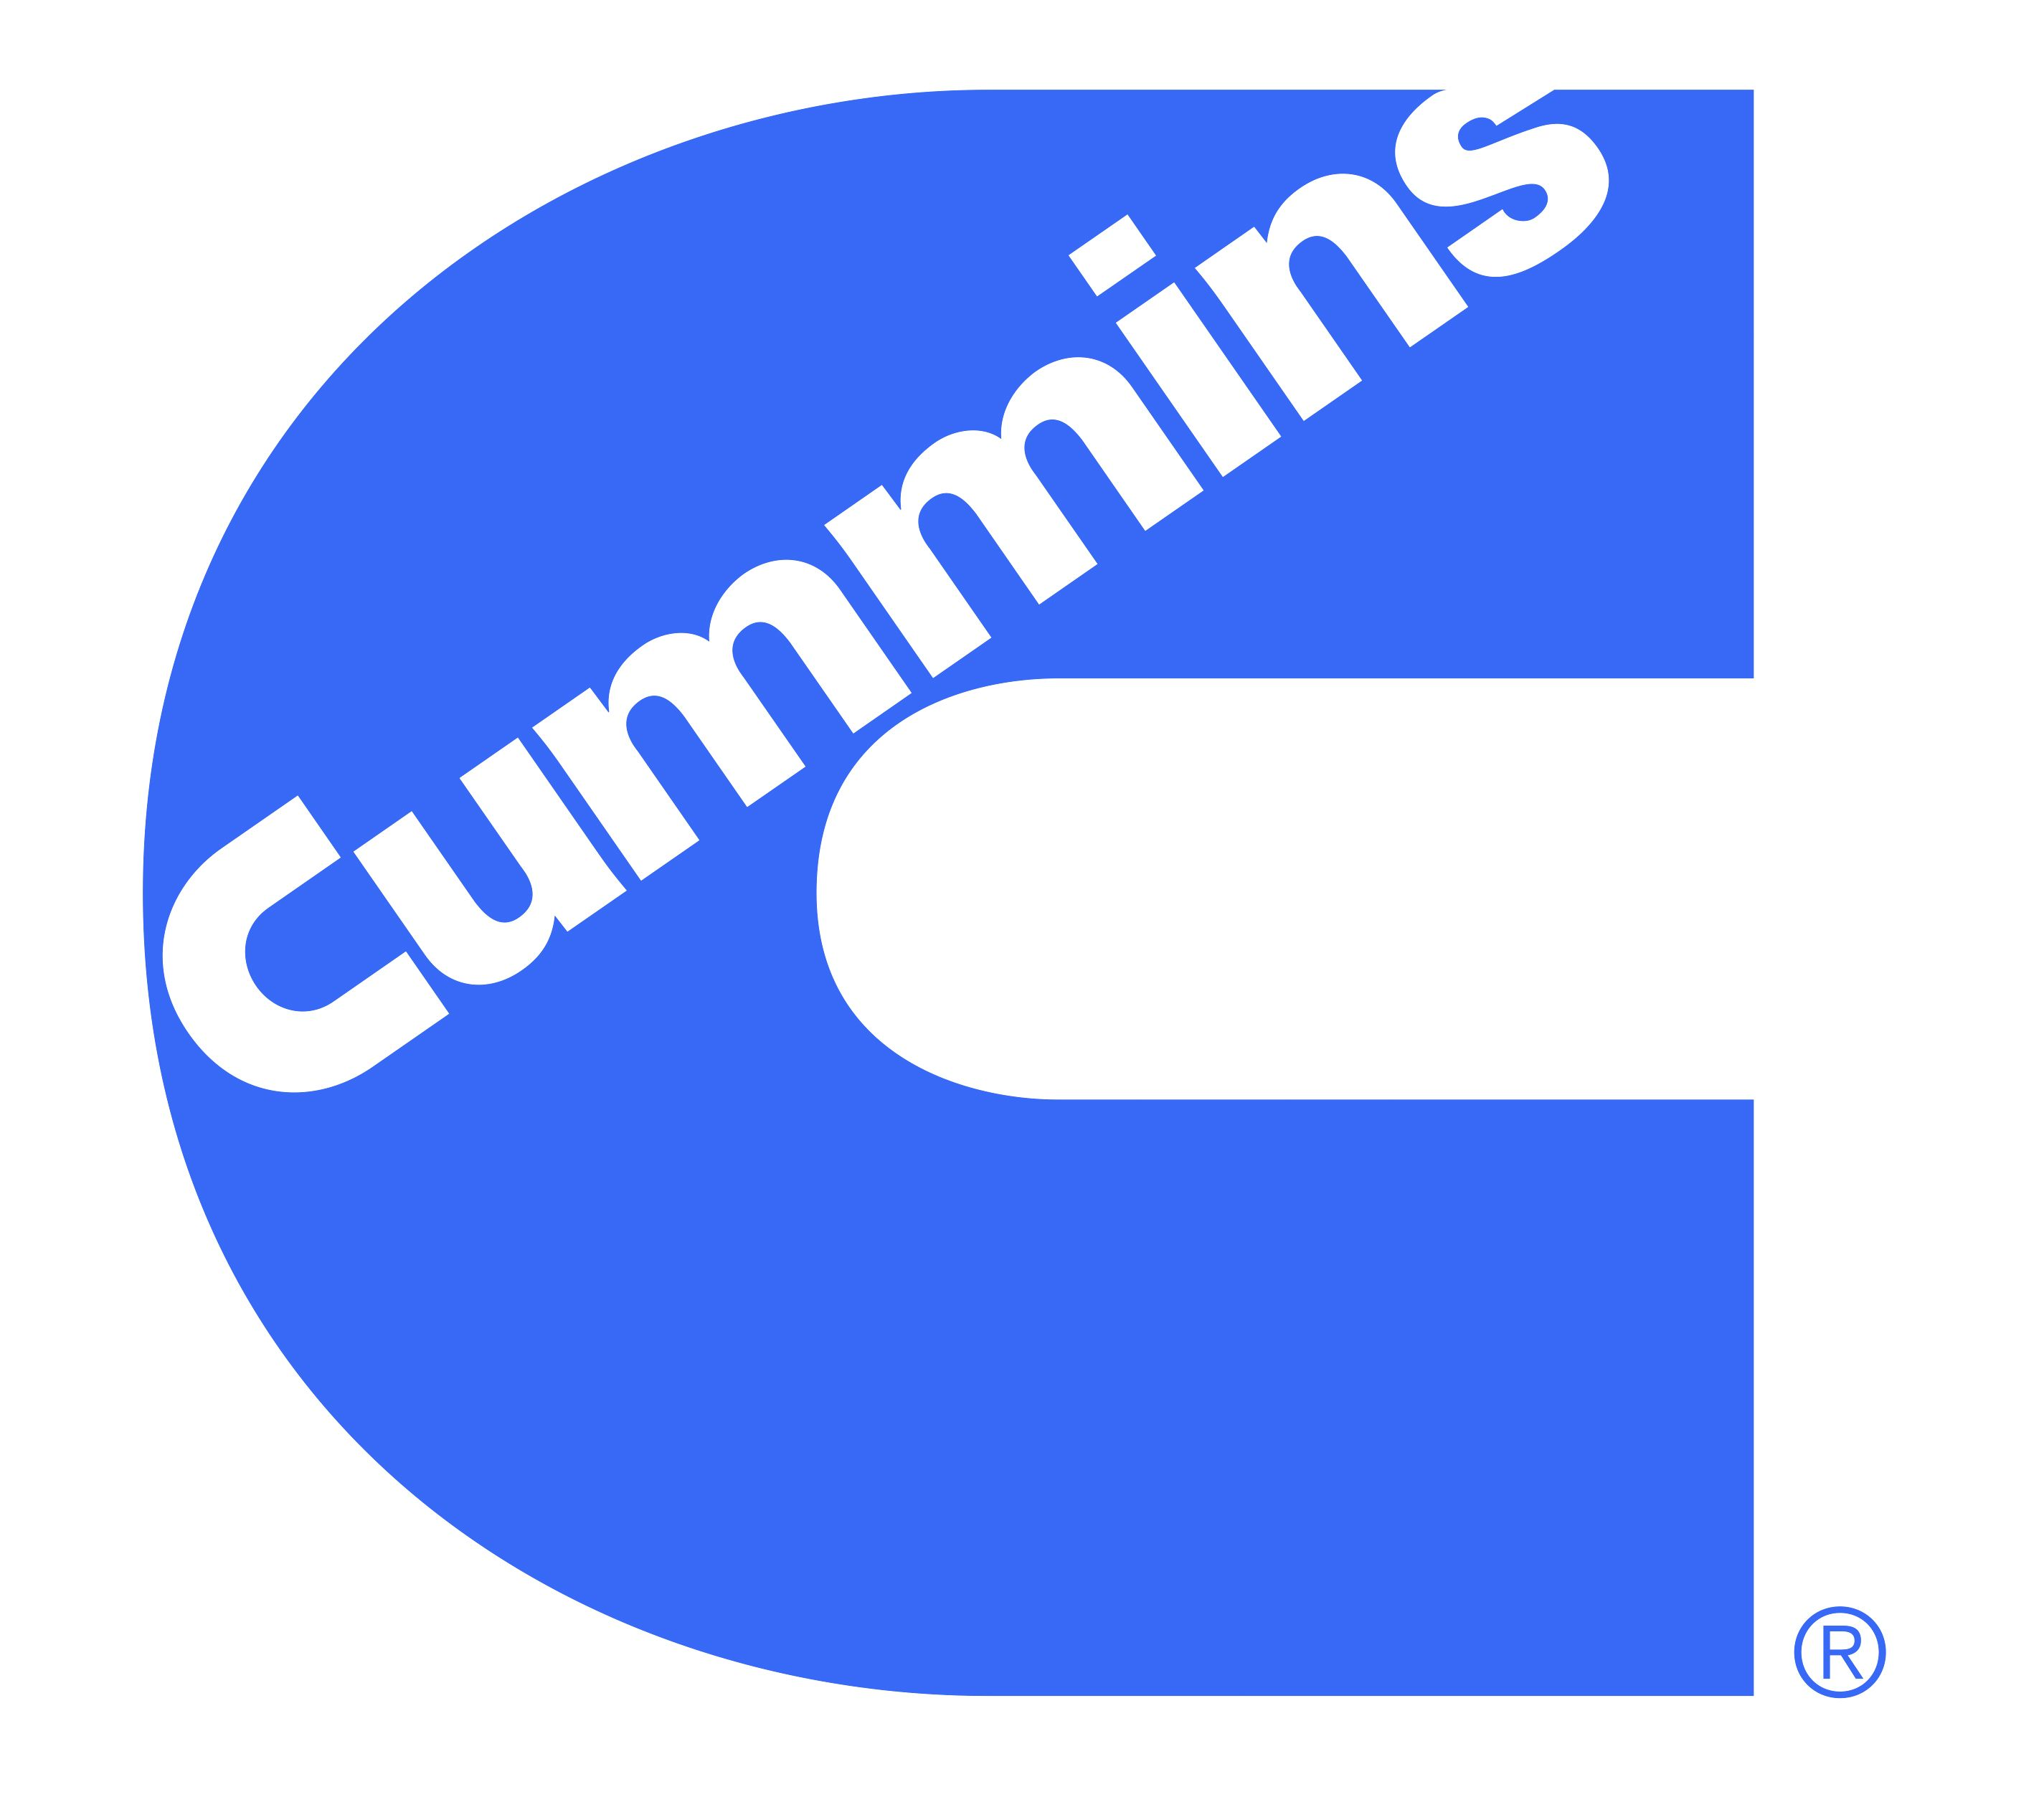 Cummins Logo - Cummins Logo, Cummins Symbol, Meaning, History and Evolution